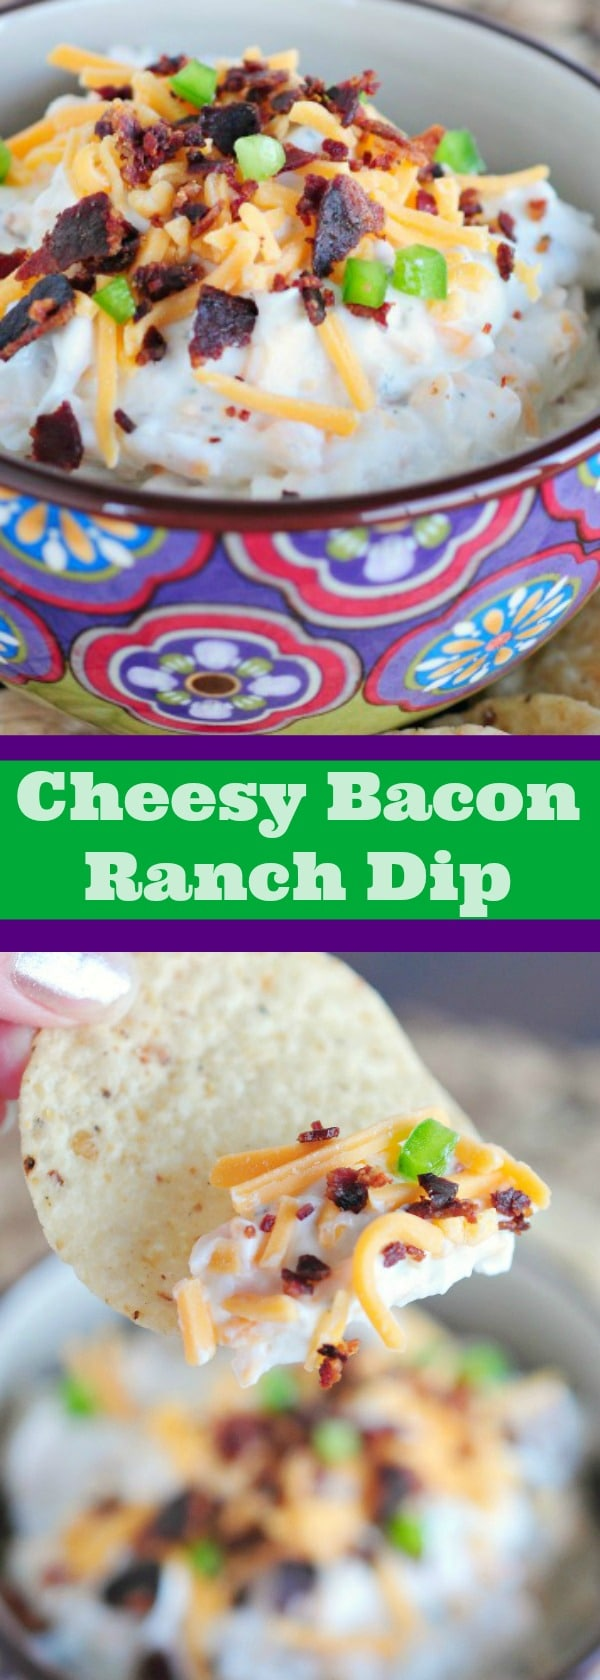 Cheesy Bacon Ranch Dip - 5 minute appetizer that no one can resist! Great for Game day too!-2